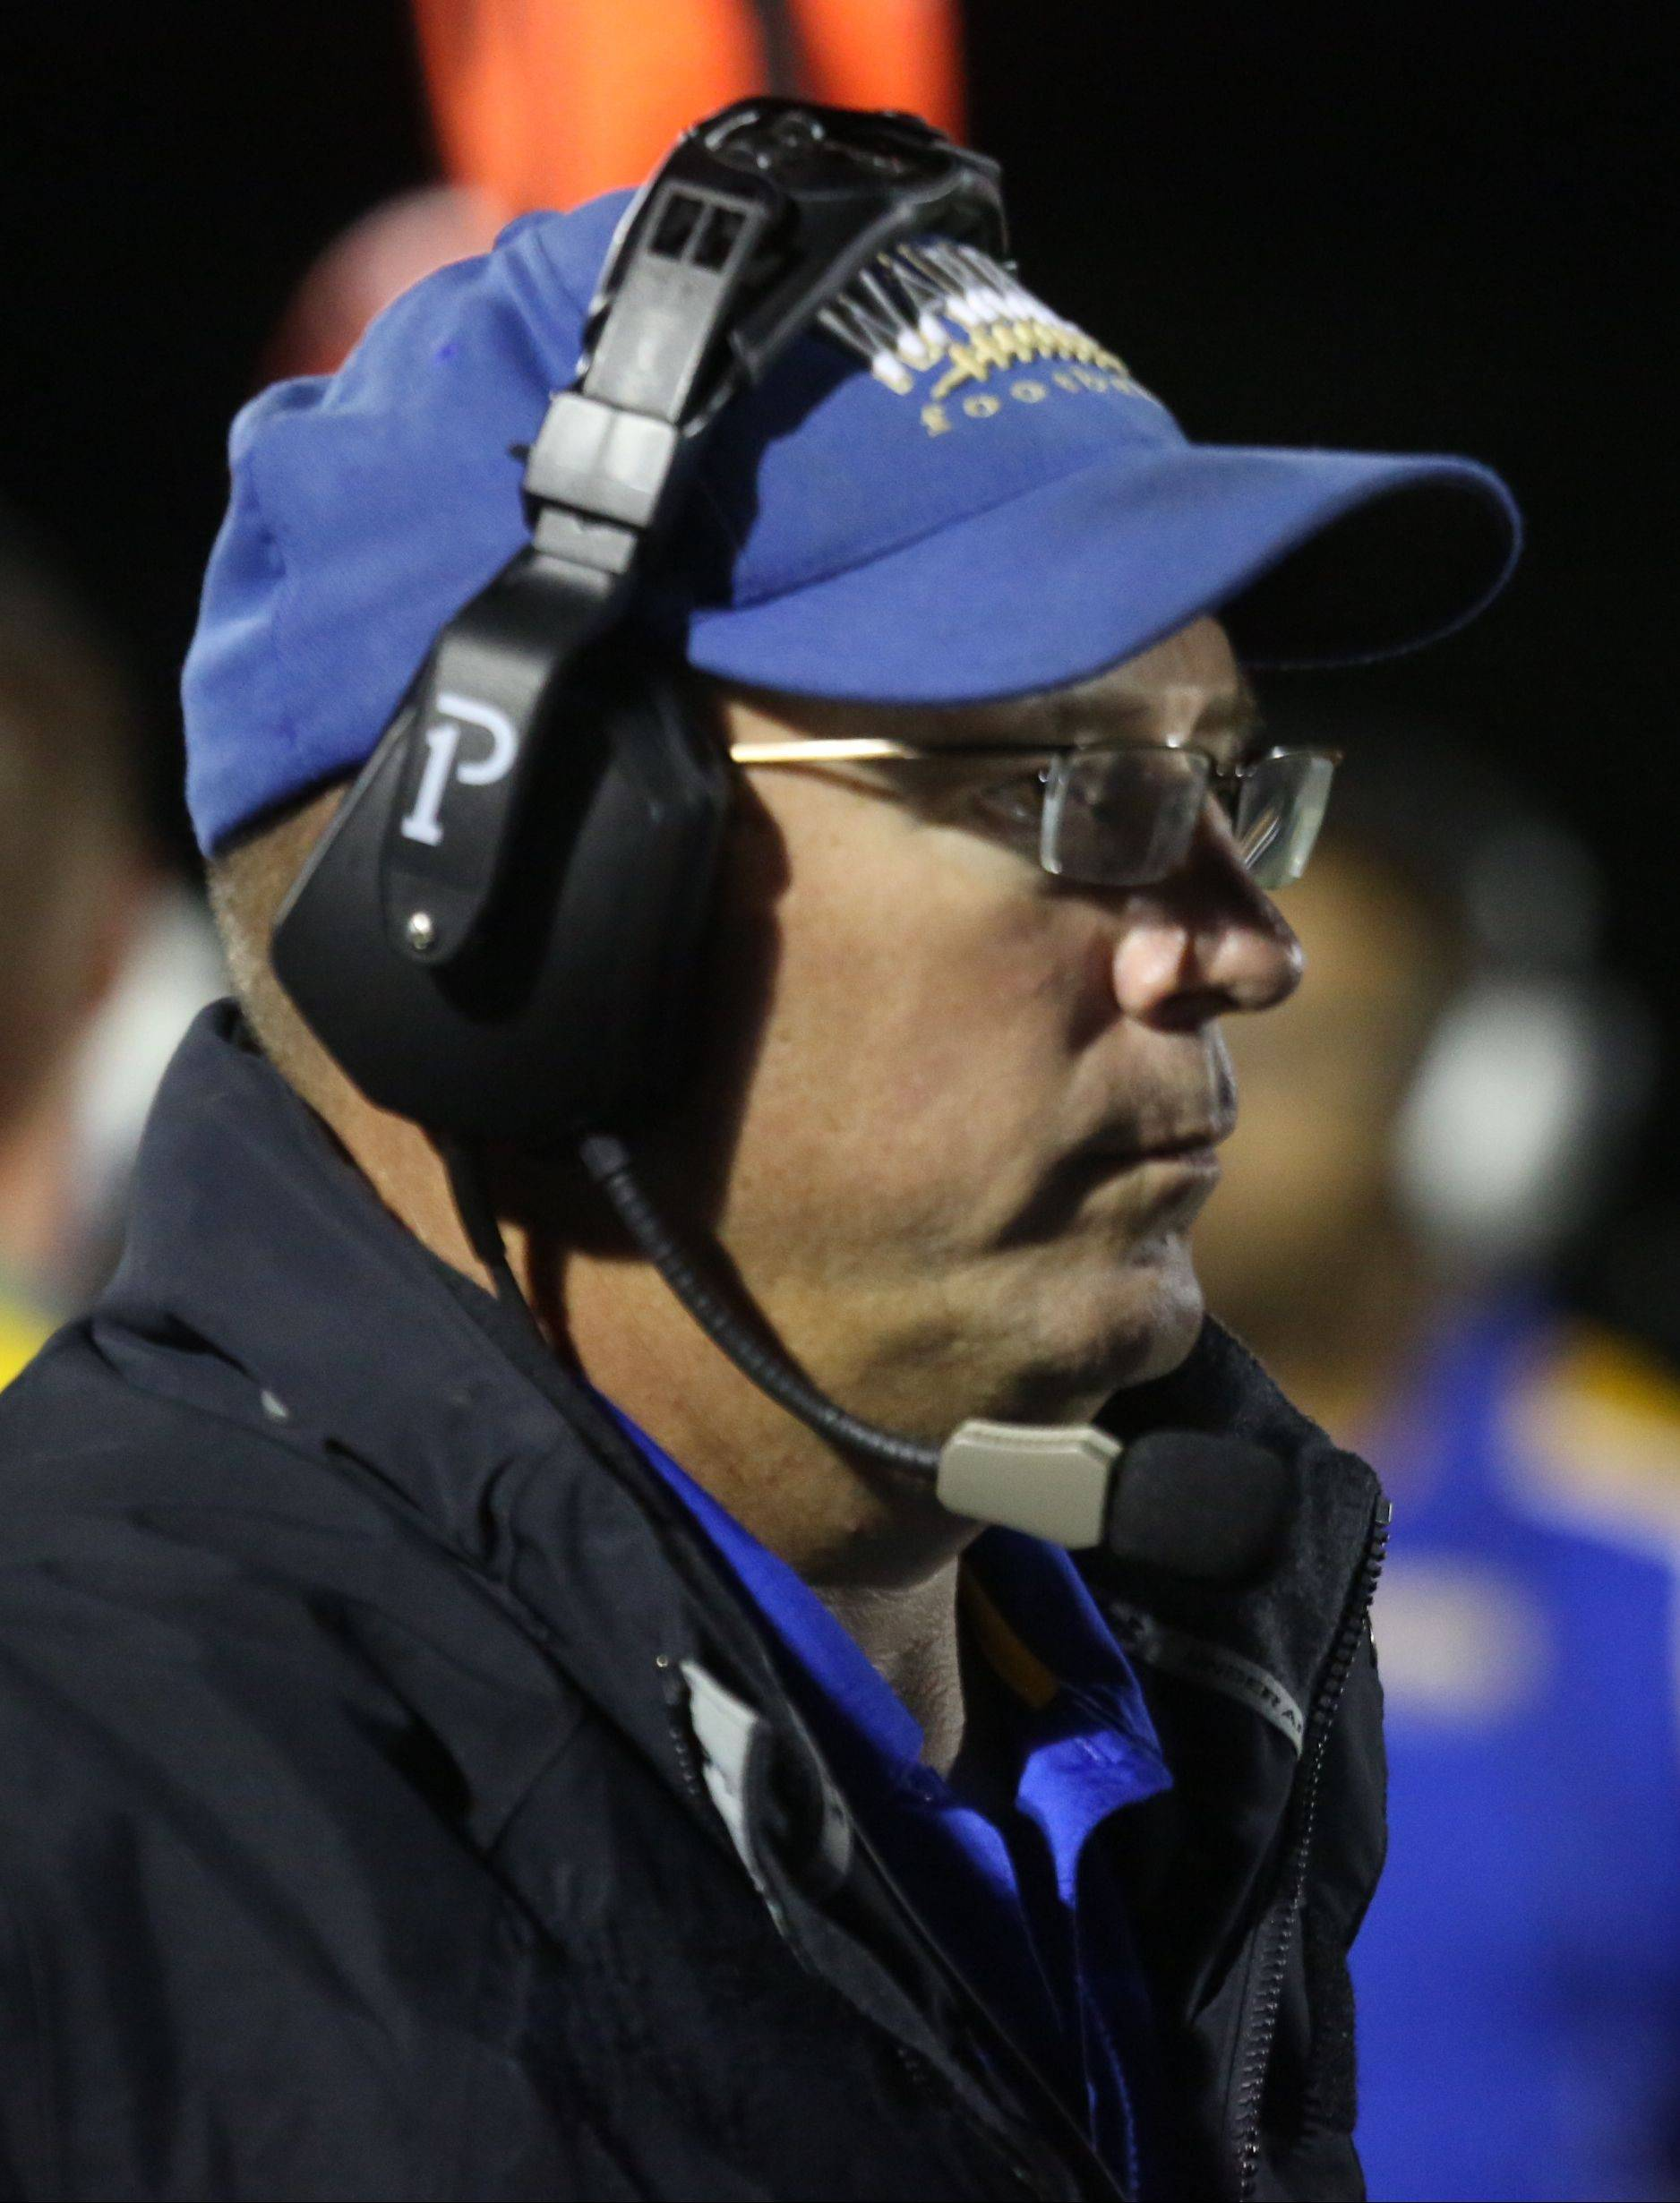 Warren football coach Dave Mohapp has stepped down after 17 seasons and 109 wins, the most in program history.